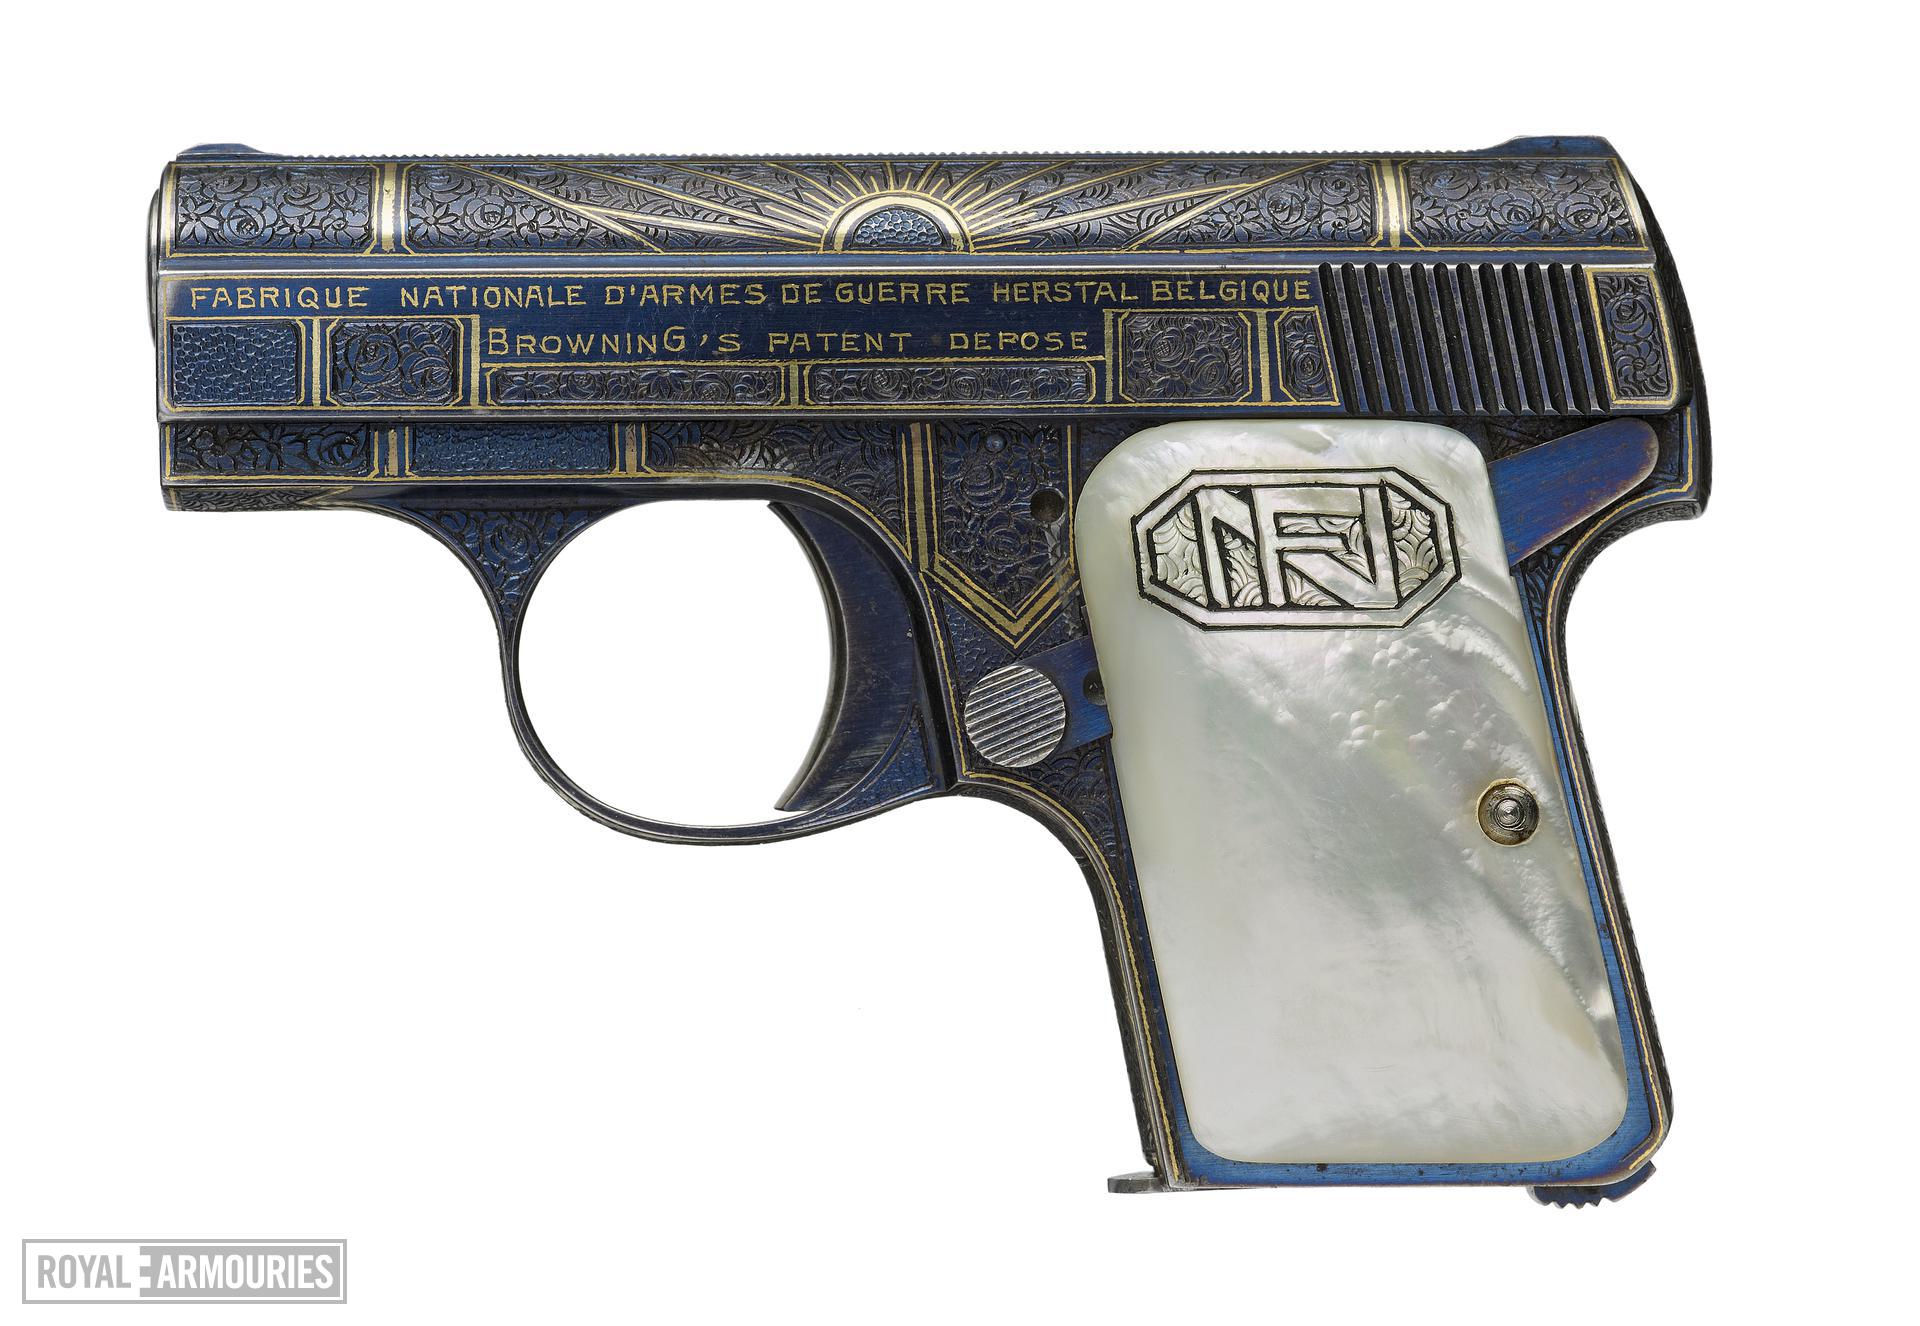 Centrefire self-loading pistol - FN Baby Browning